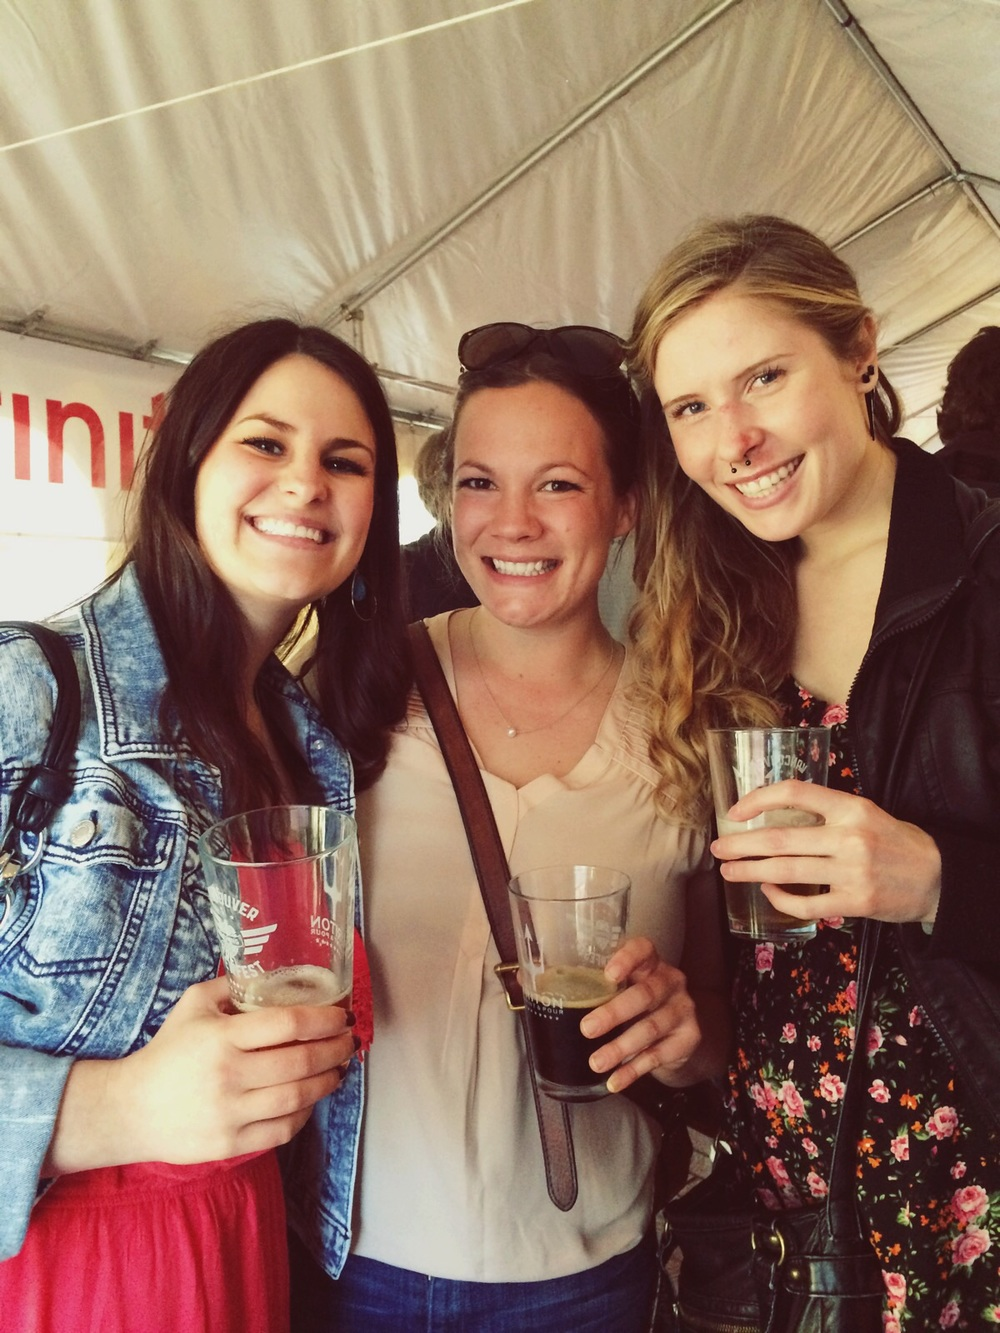 Bri, Katy, and me at Vancouver's Brewfest